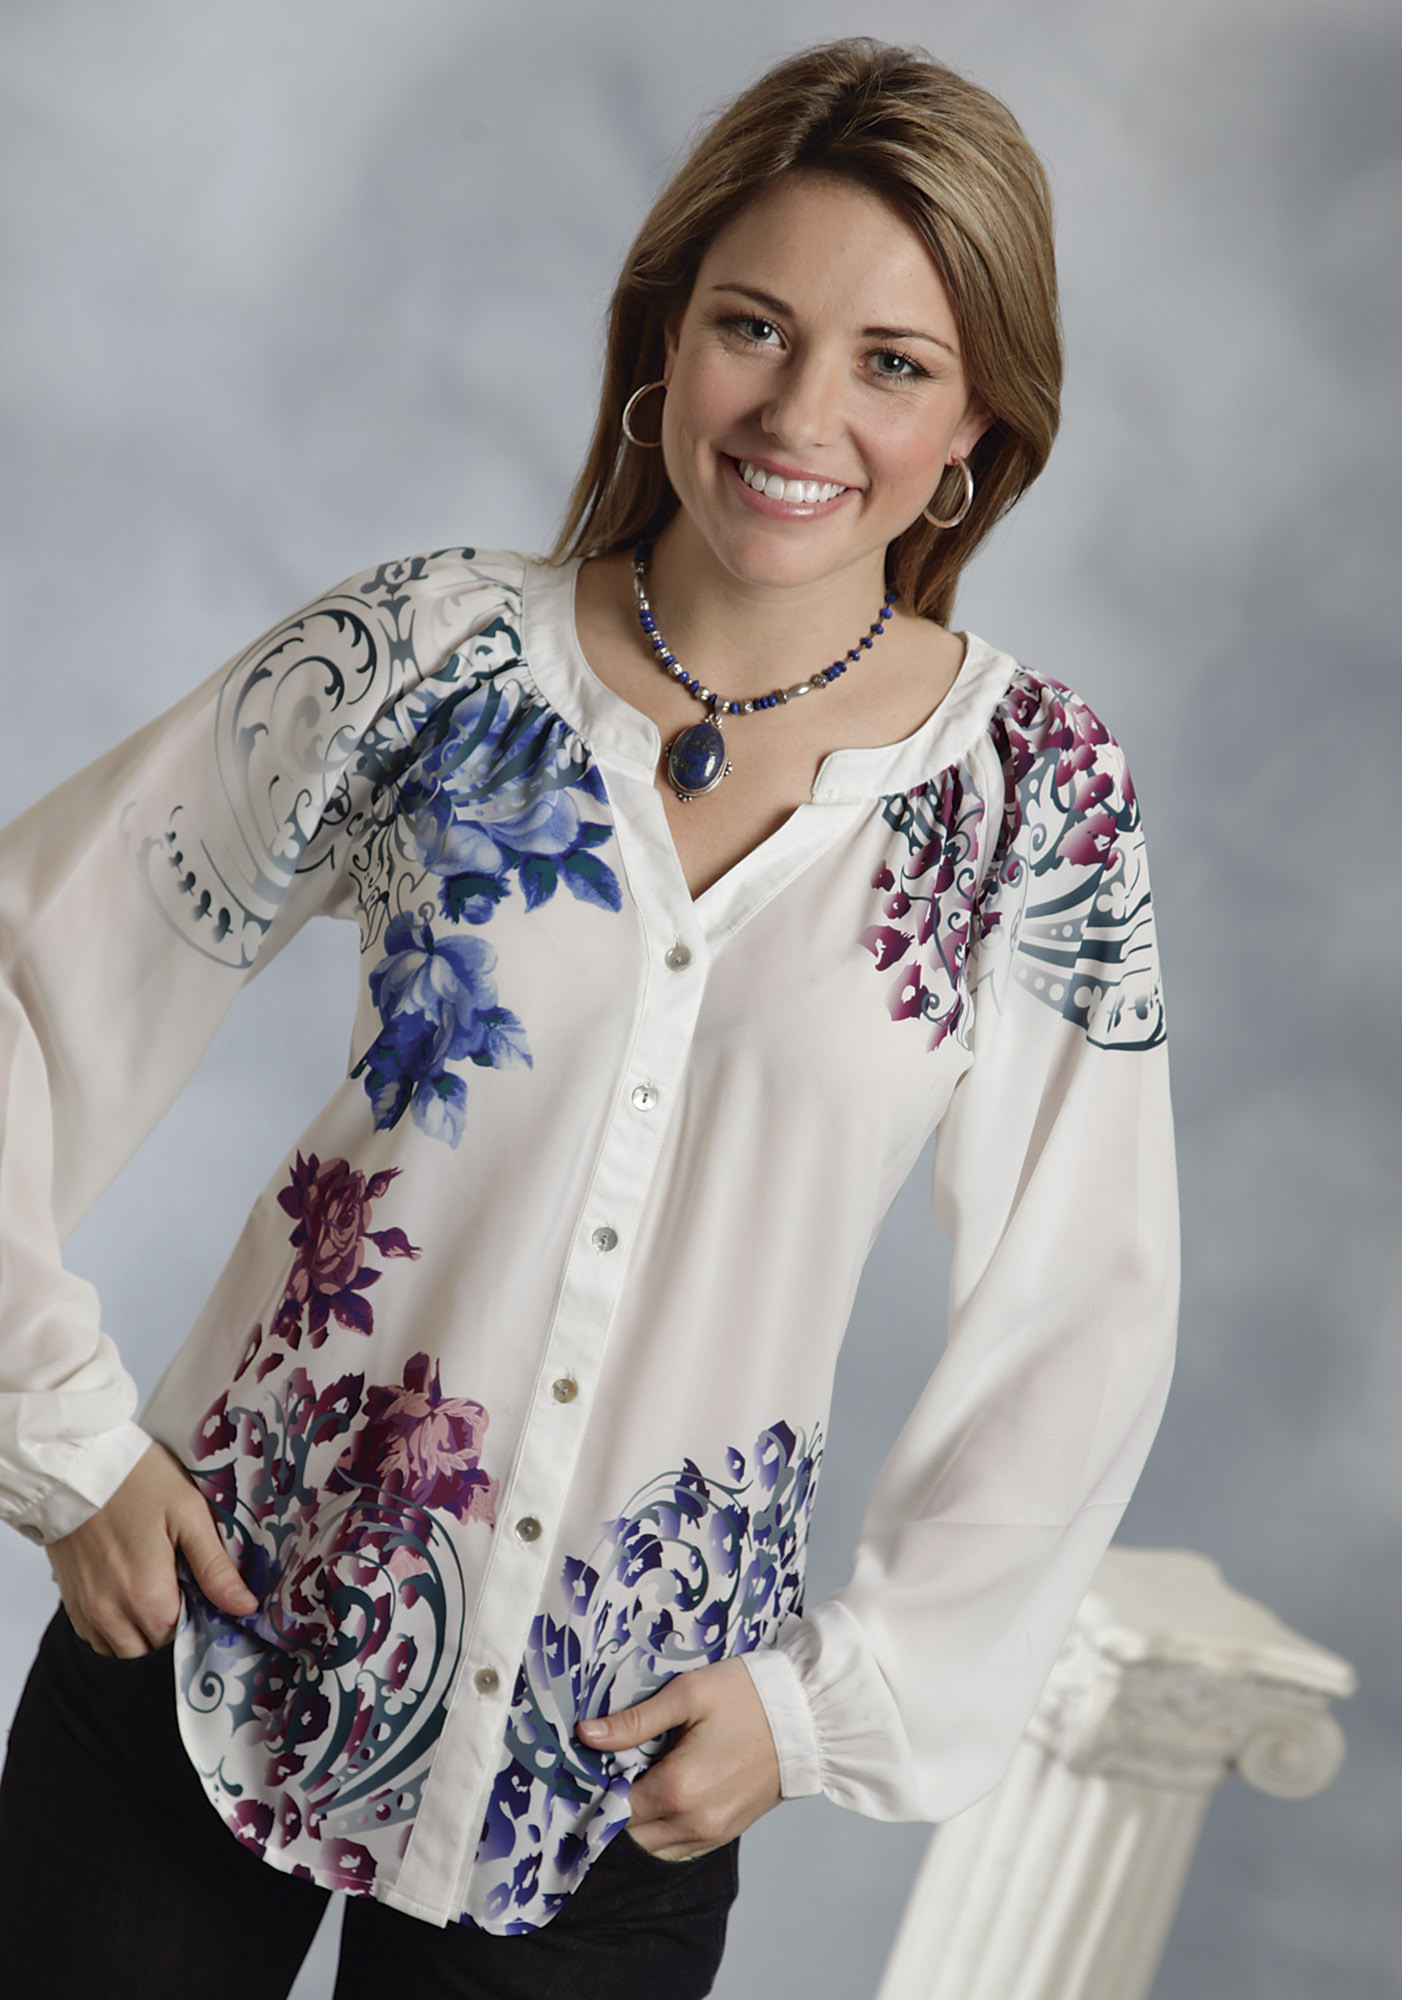 Shop for womens peasant blouse online at Target. Free shipping on purchases over $35 and save 5% every day with your Target REDcard.